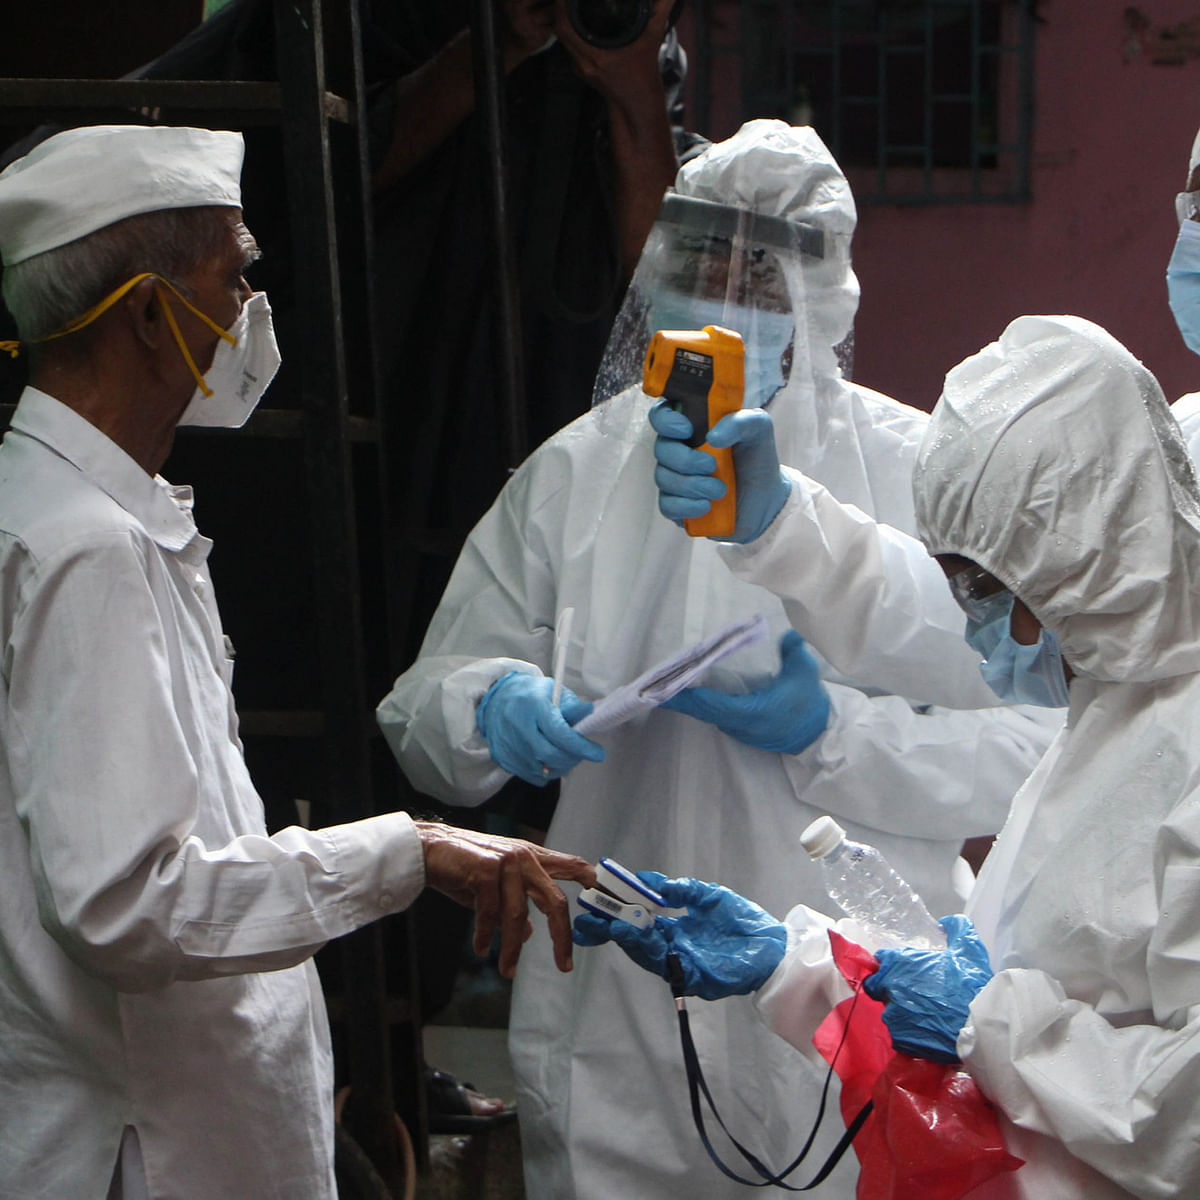 Coronavirus in Mumbai: As coronavirus cases sees a surge, city leaders want complete lockdown